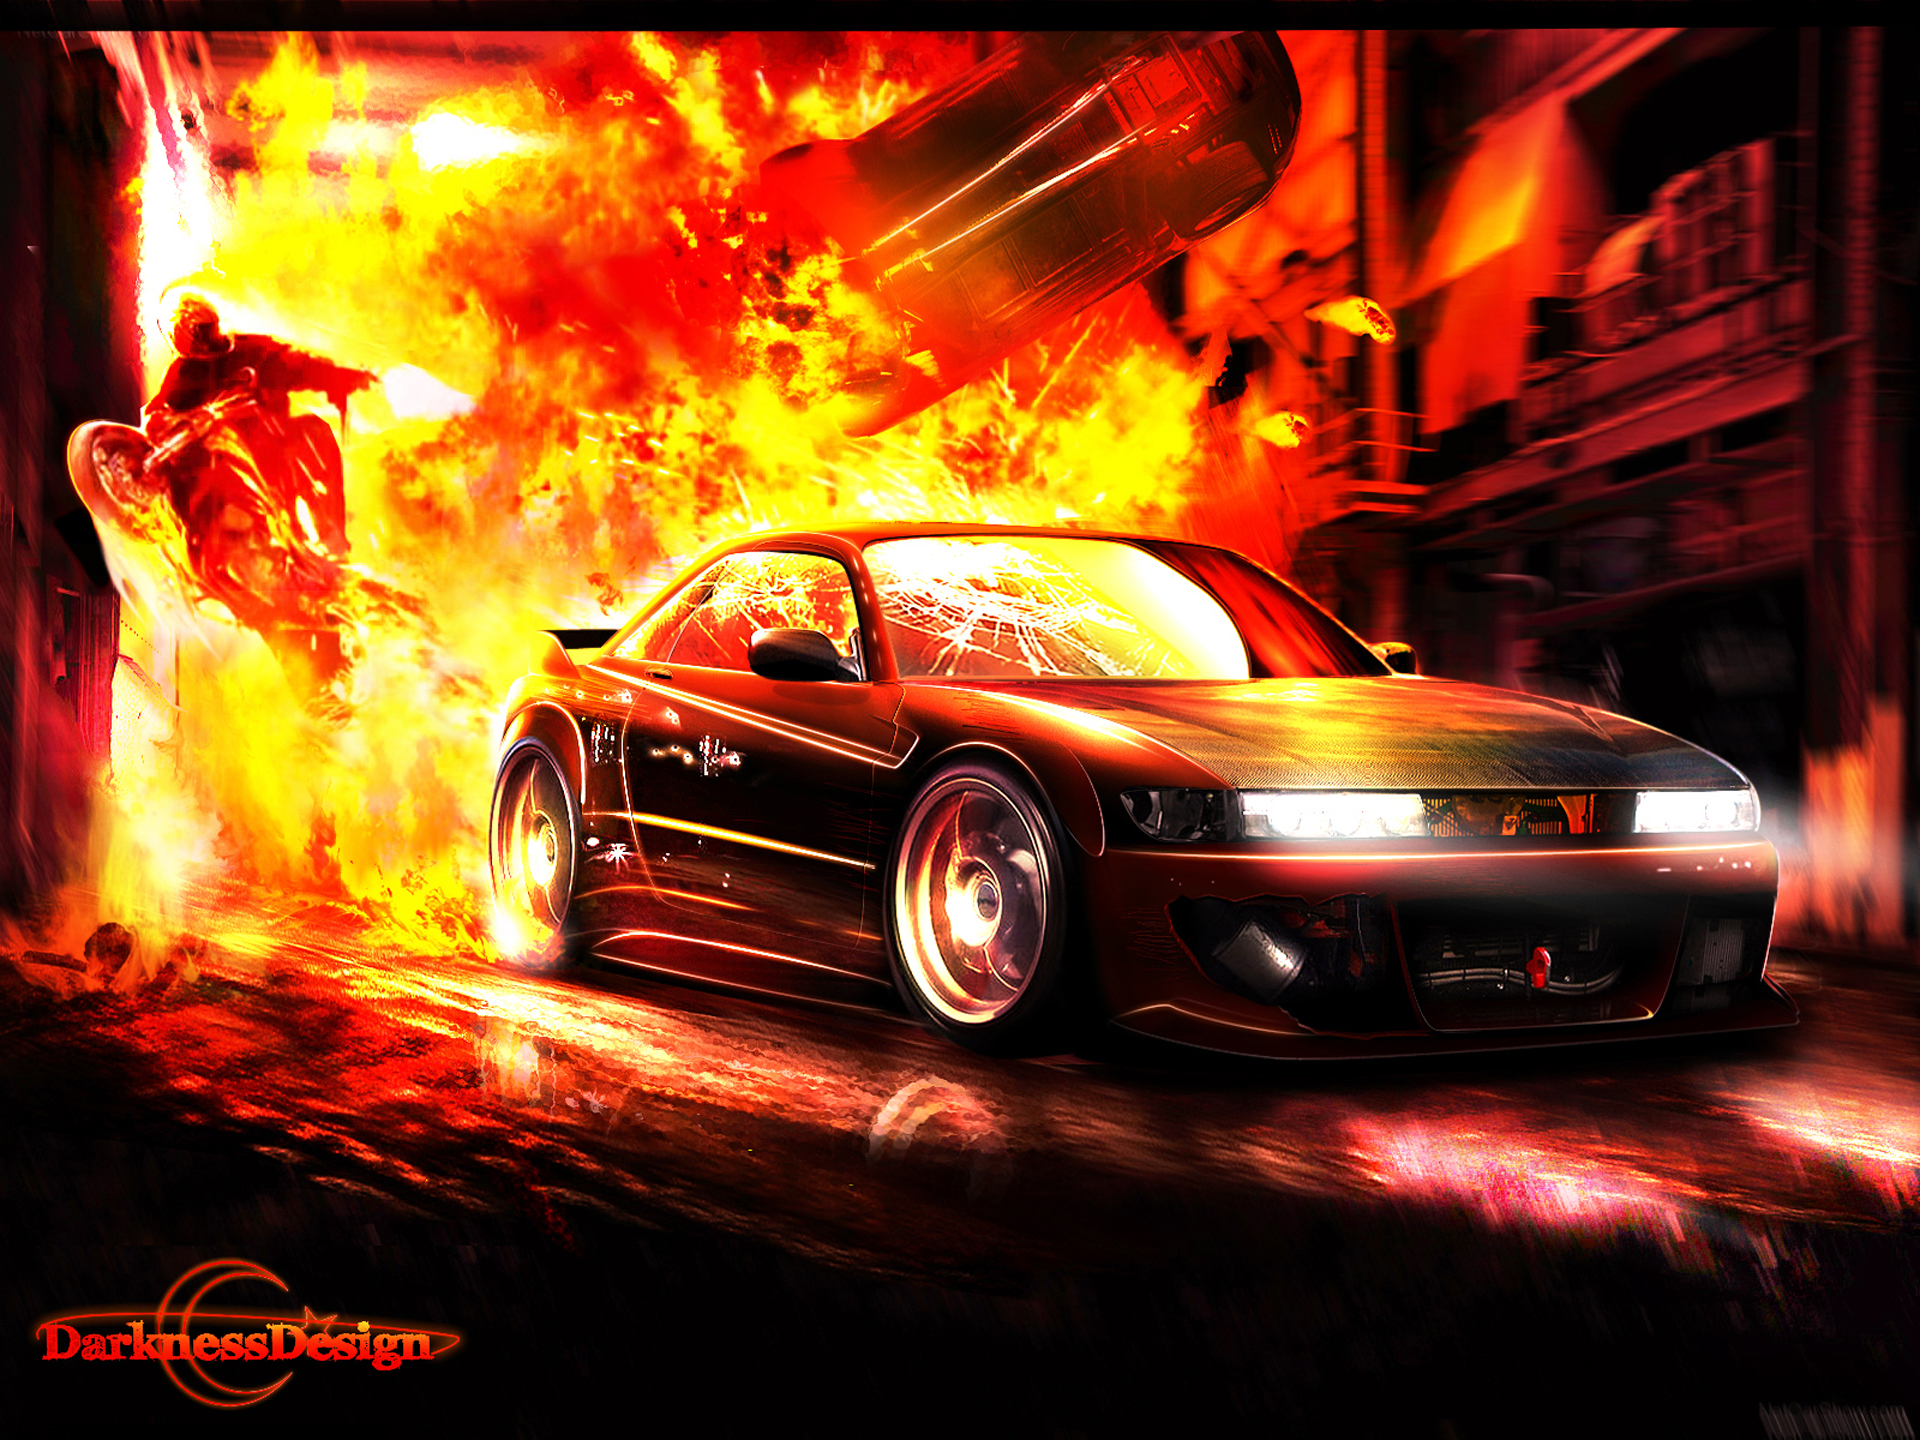 Cars Explosion Wallpaper X WallpaperUP - Cool cars on fire